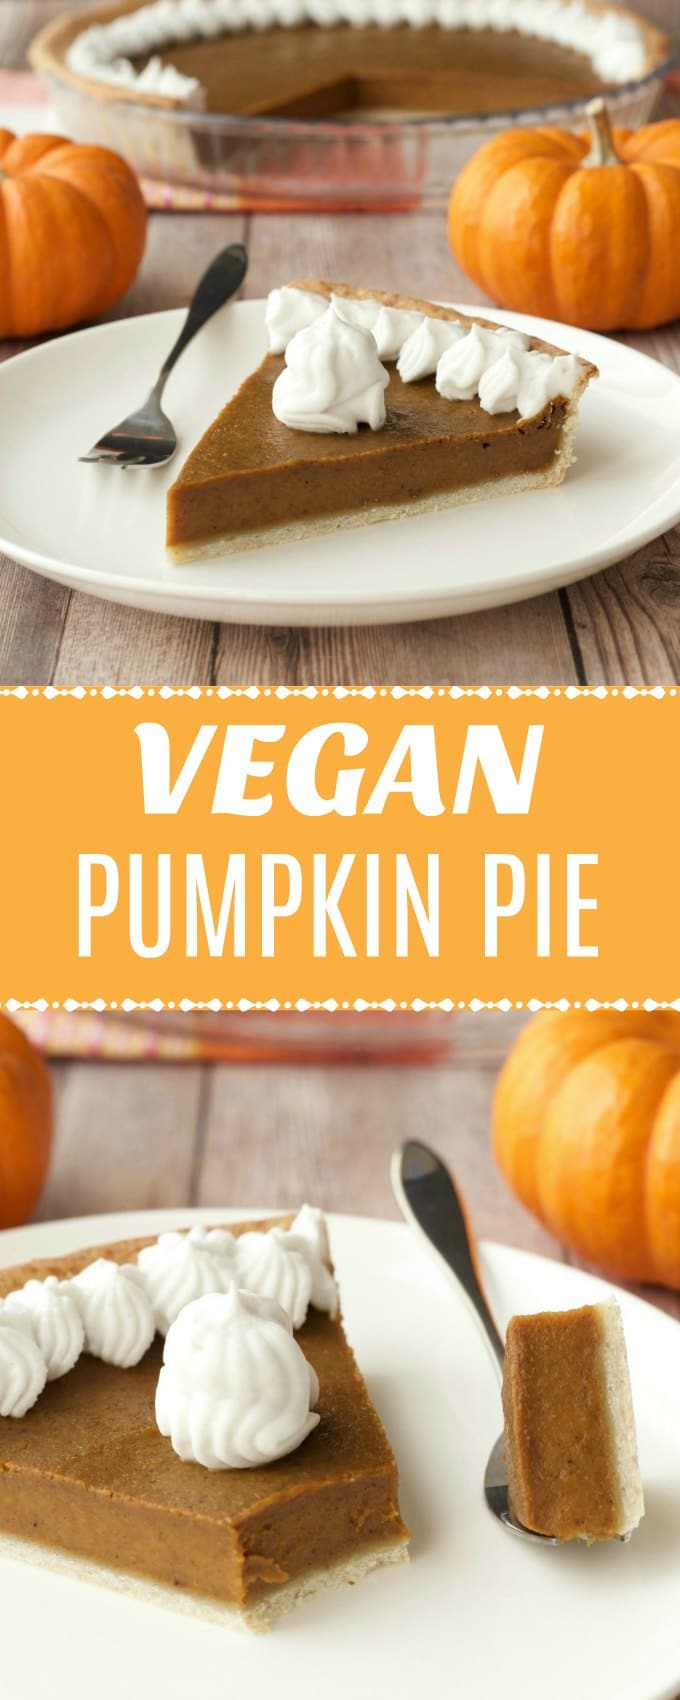 Rich and perfectly creamy vegan pumpkin pie. Wonderfully spiced and flavorful this delicious pie is perfect for the holidays. | lovingitvegan.com